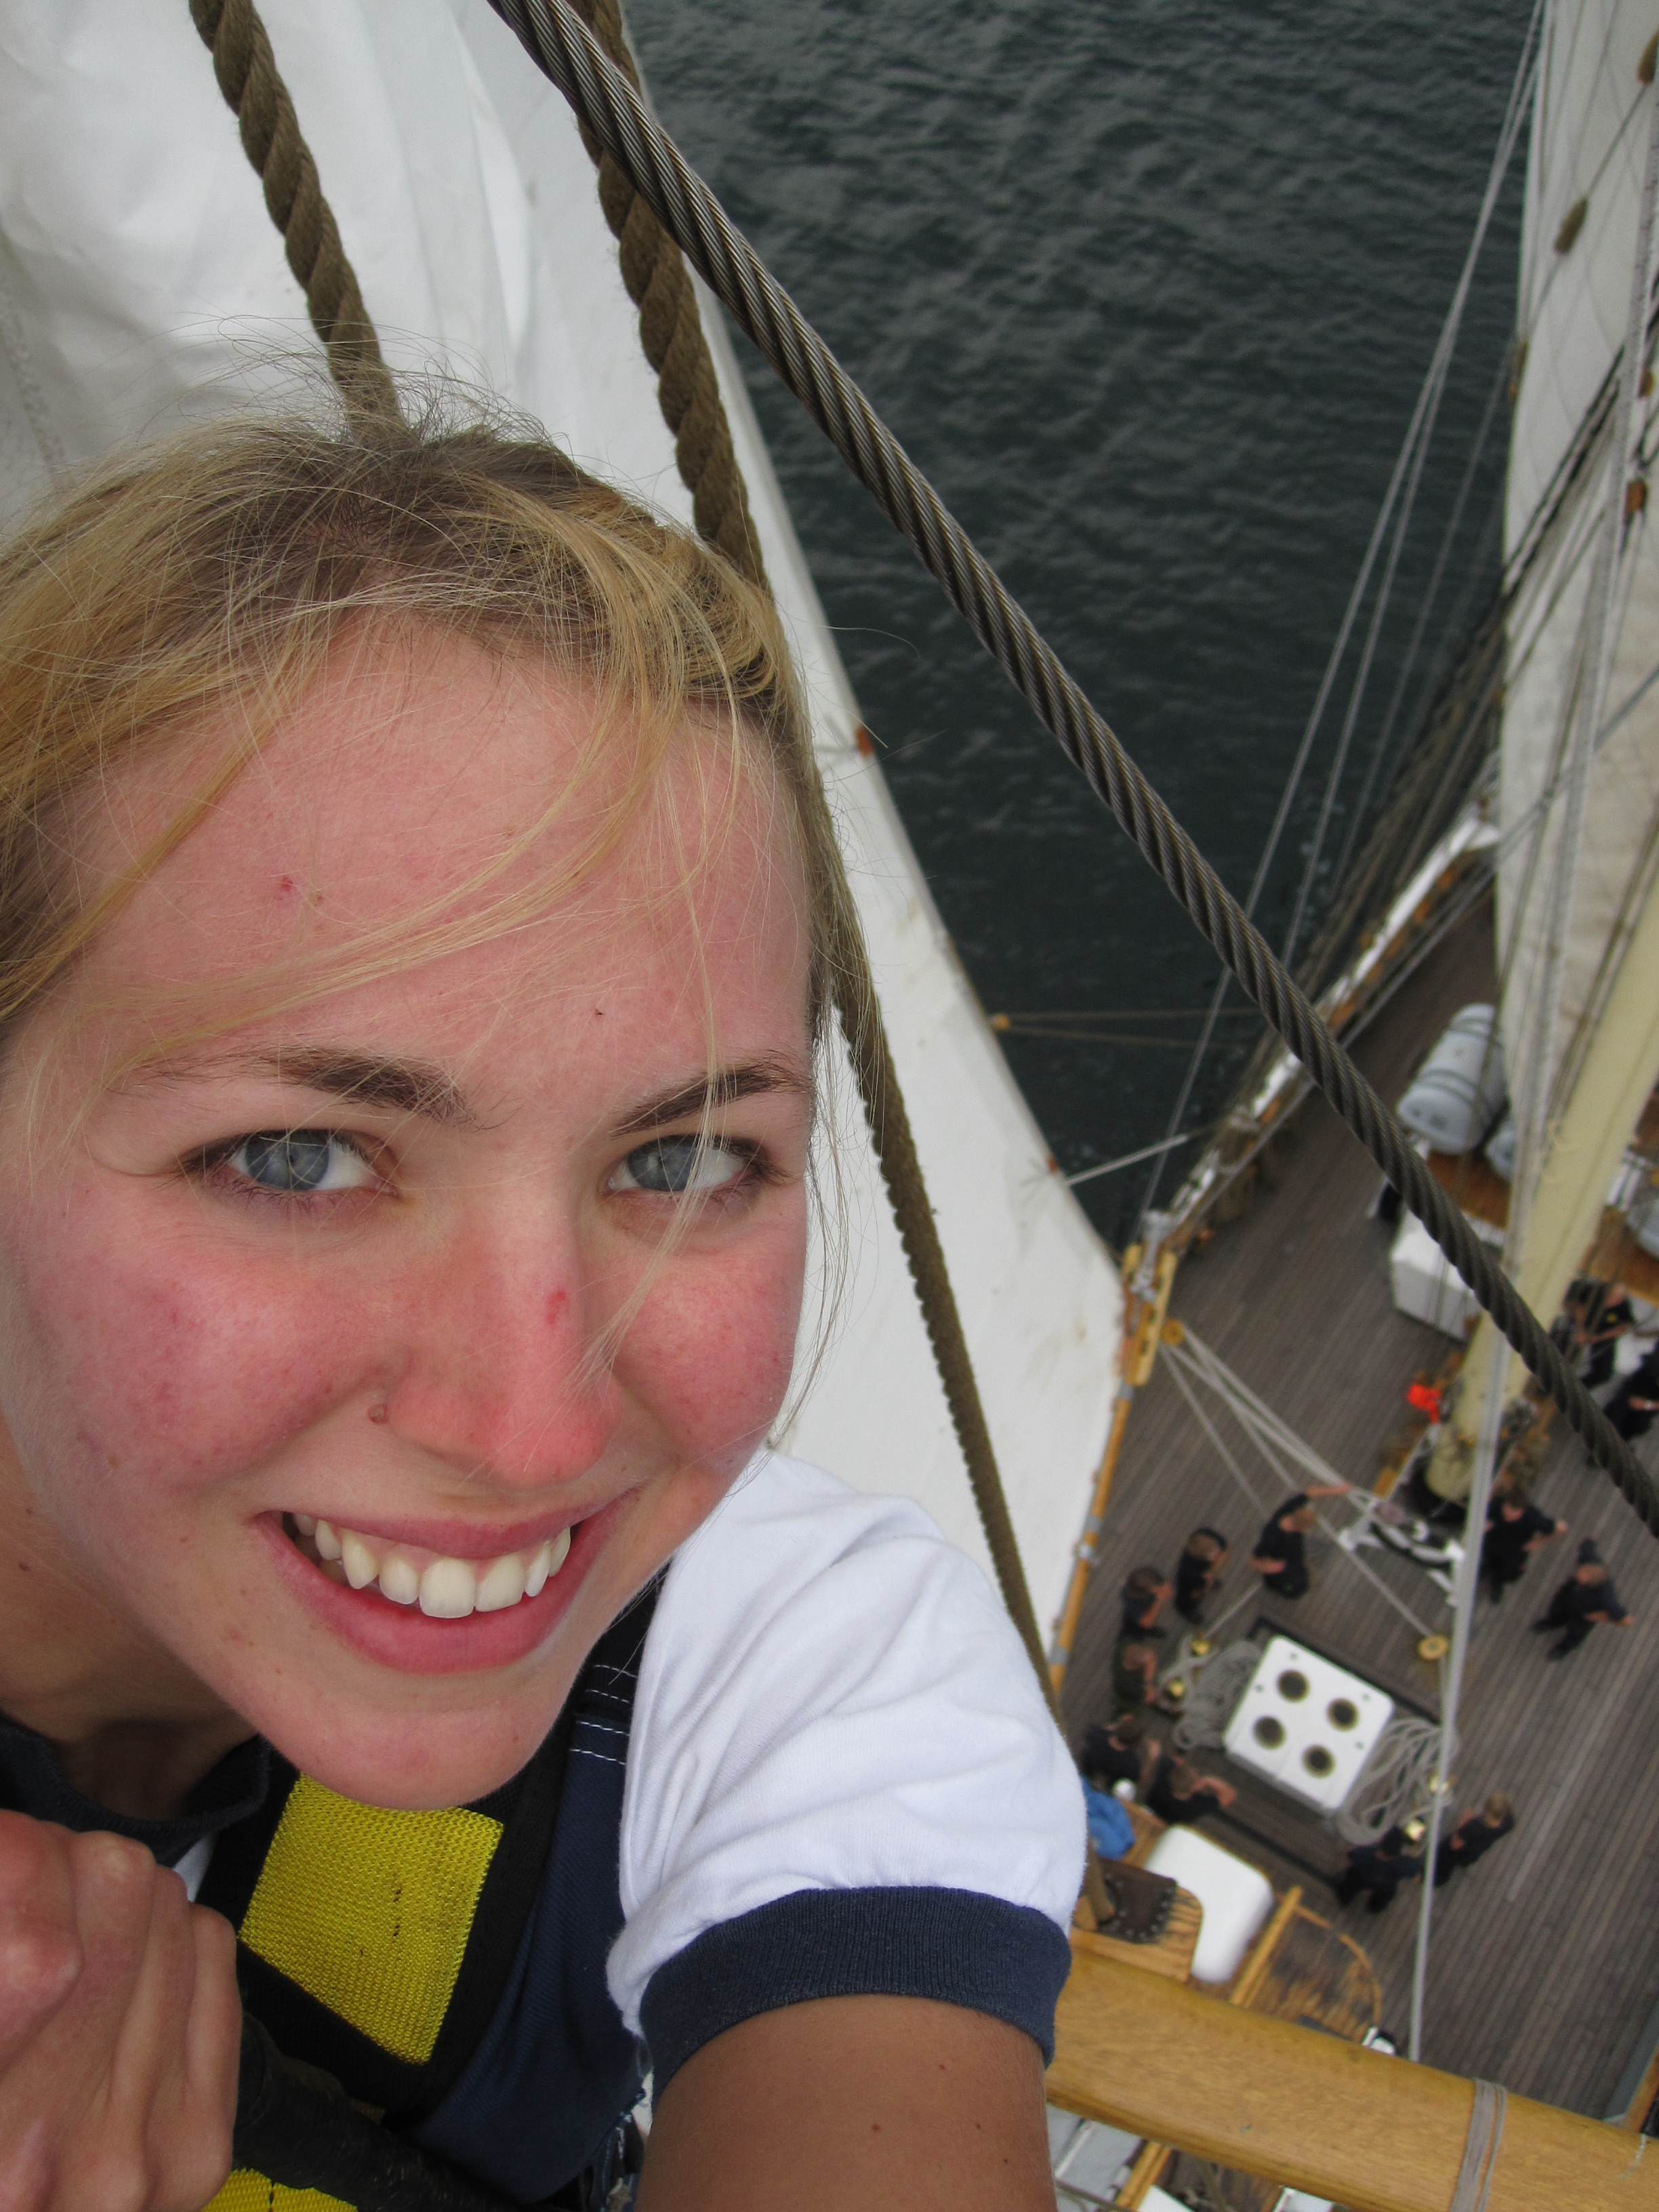 One of the cooler opportunities I was blessed to take part in. Responding to the right email at the right time, a month later I found myself on top of the mast of a Swedish tallship.